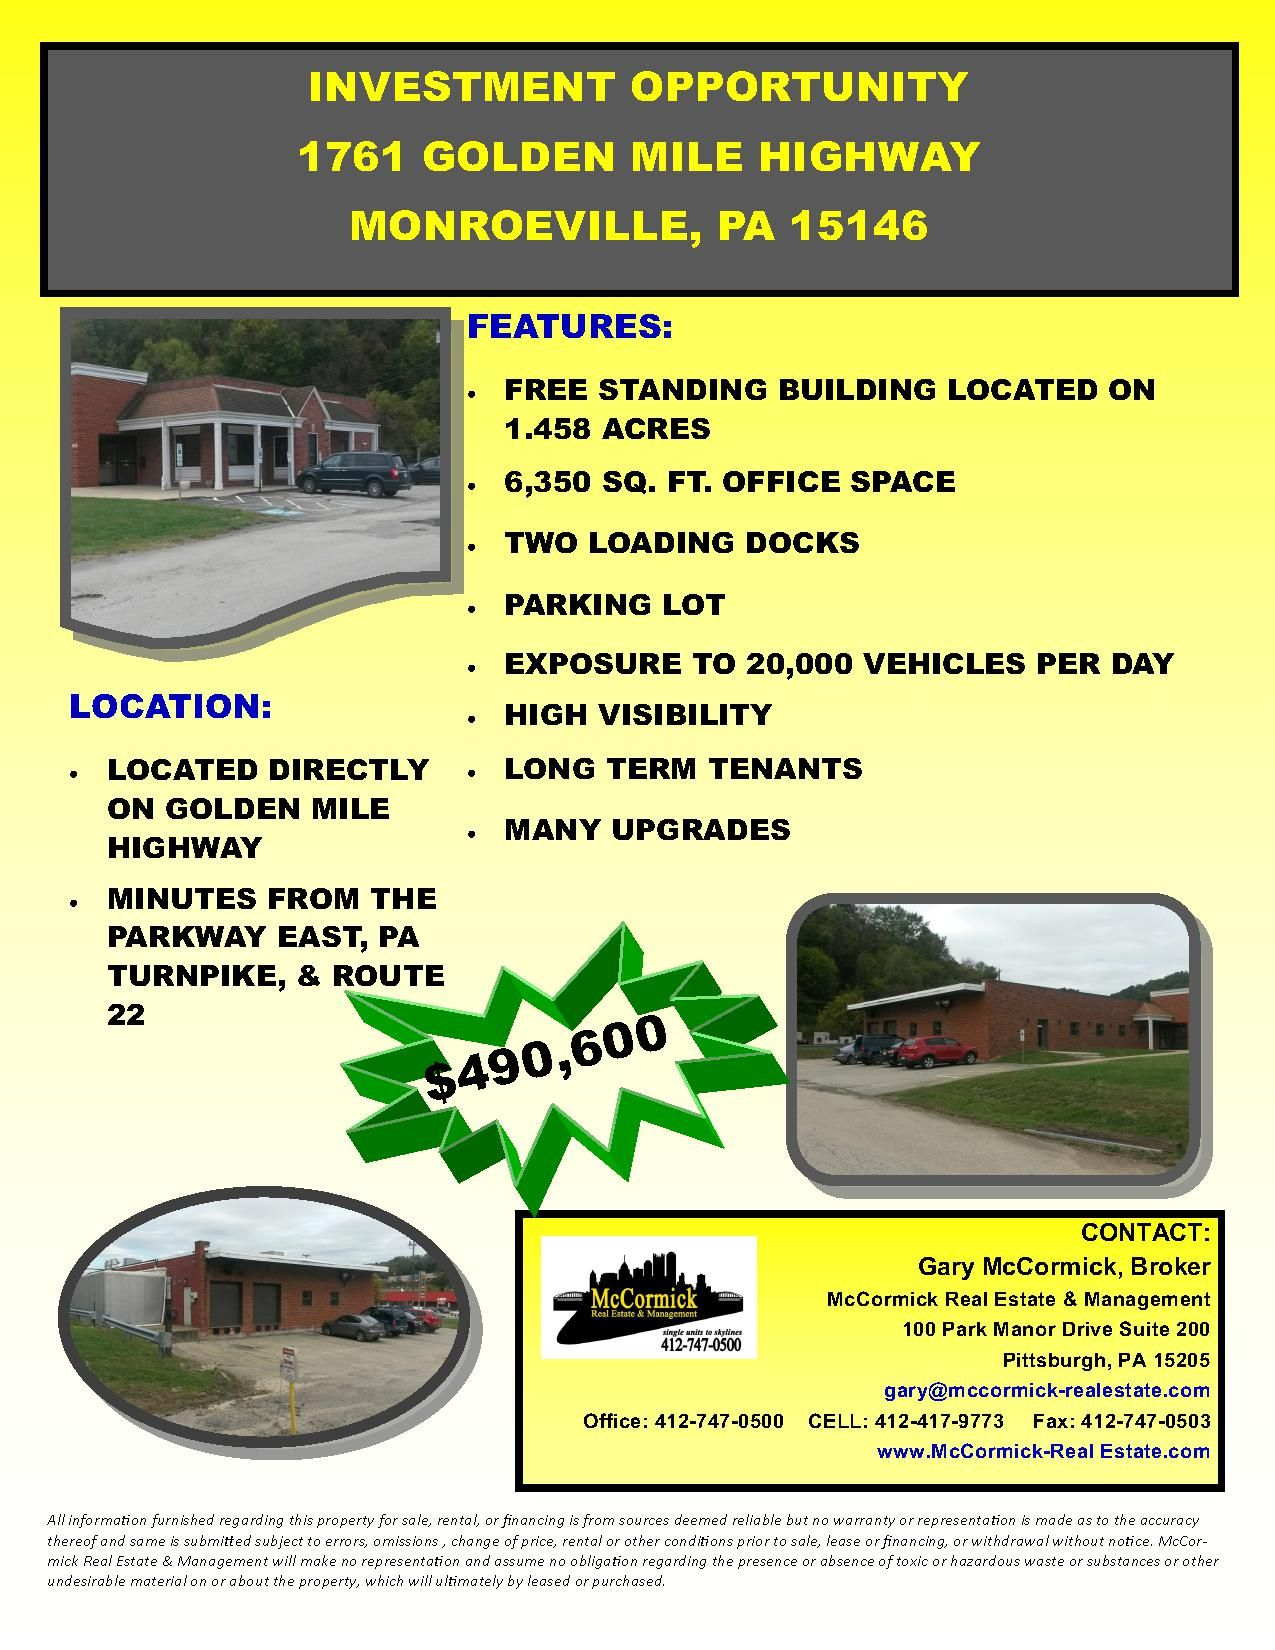 Cormick Realestate Investment Opportunity Free